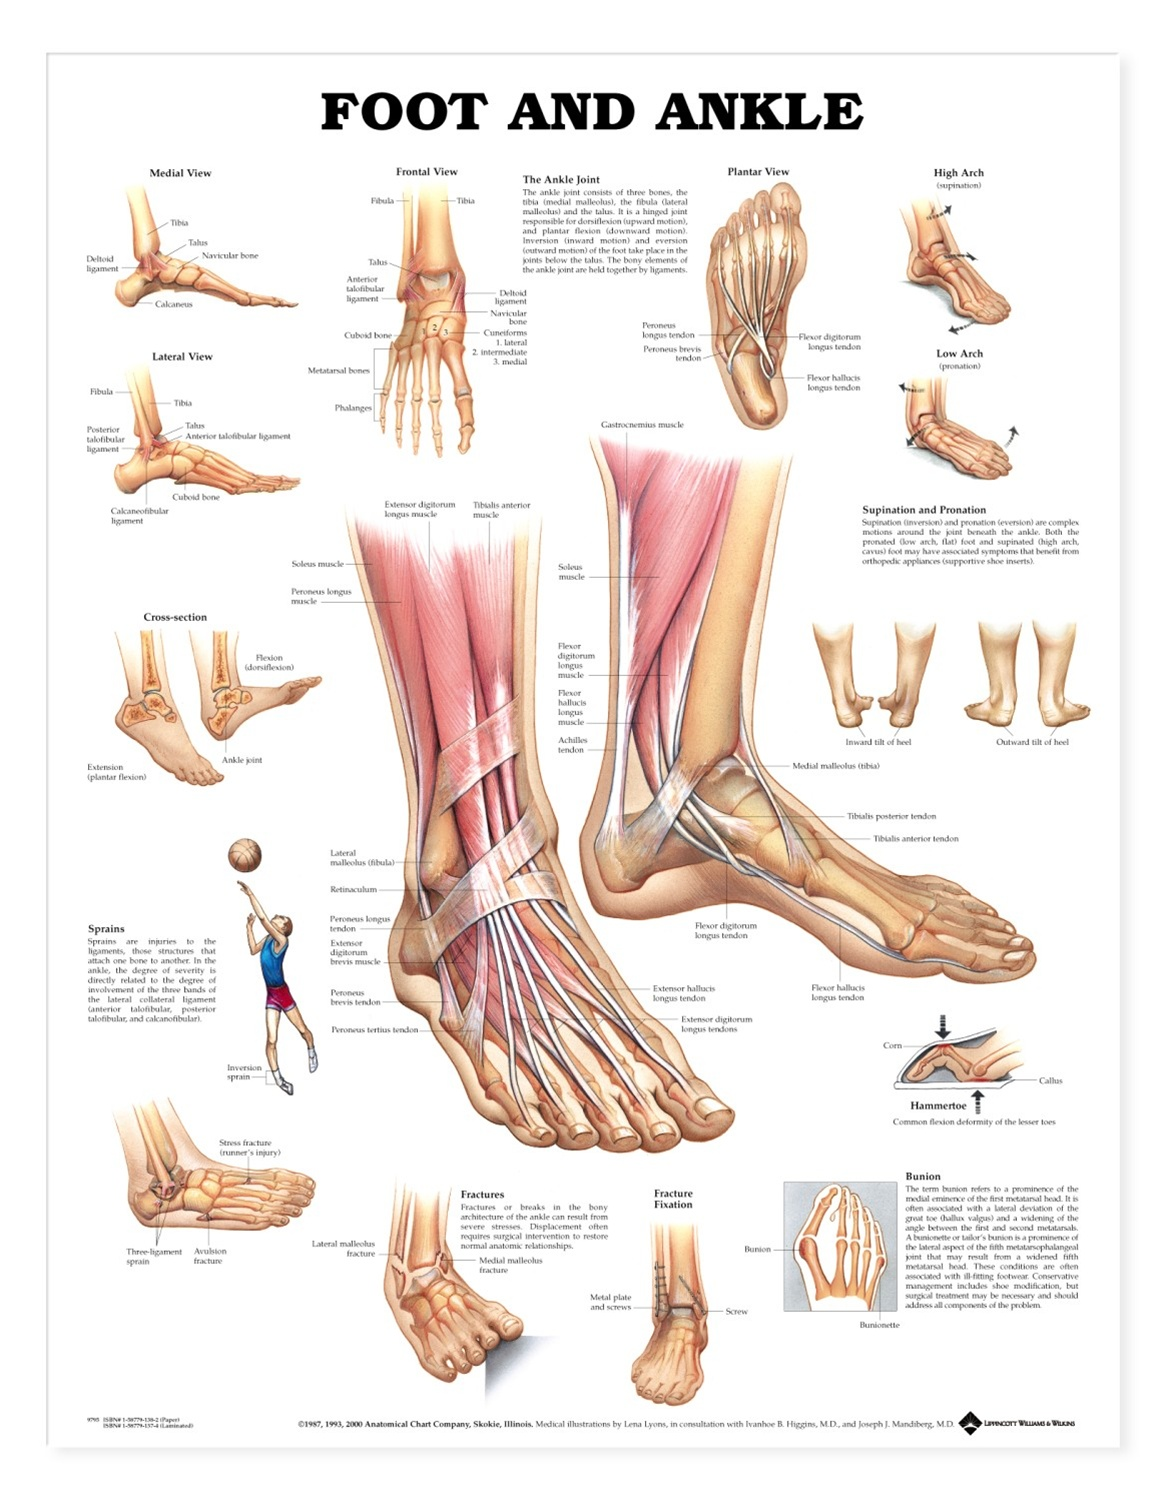 Foot and Ankle Anatomical Chart - Anatomy Models and Anatomical Charts